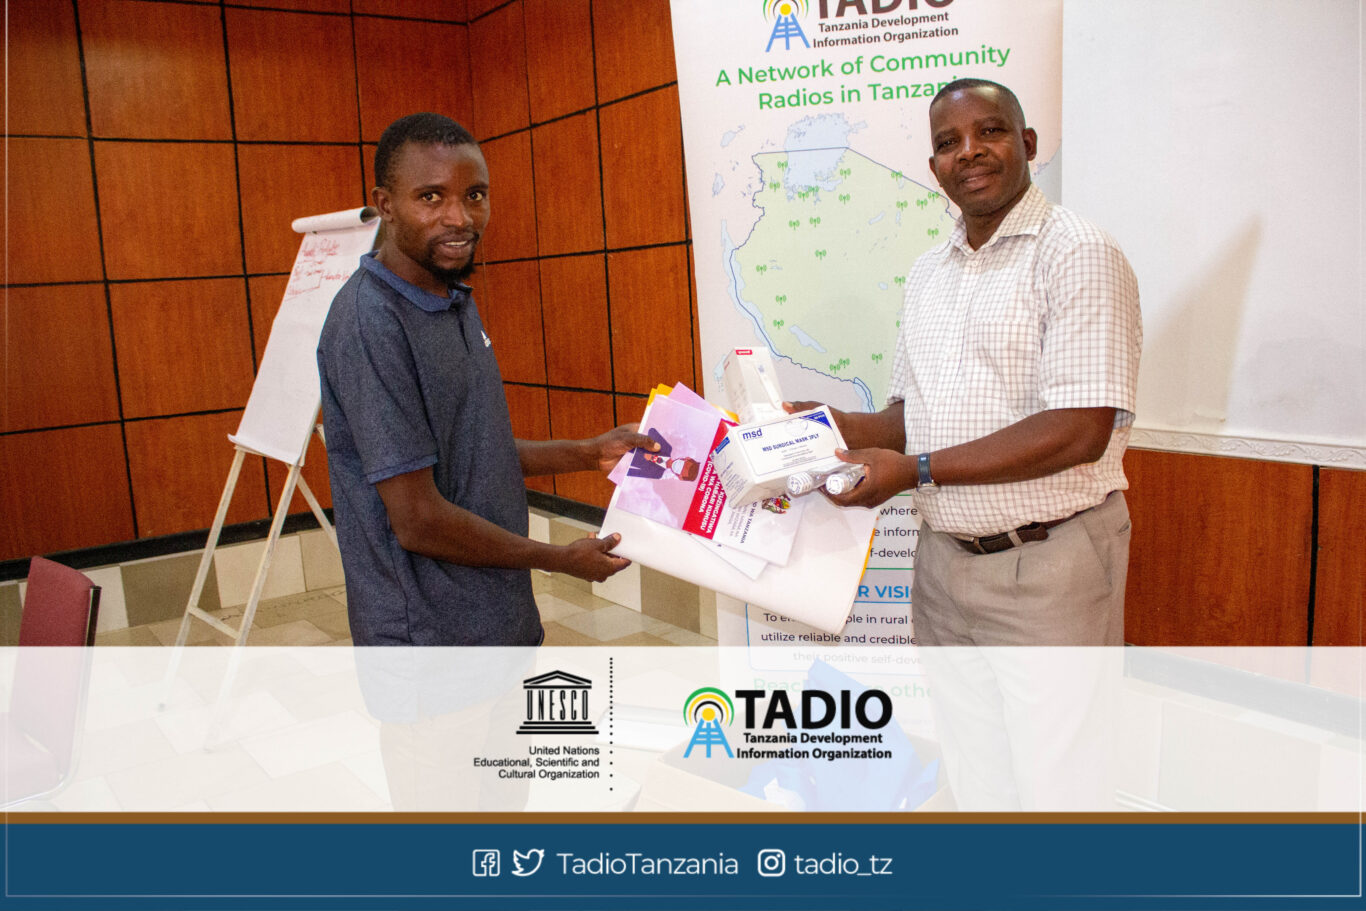 Ileje FM Manager, Mr. Maoni Mbuba receiving health protection equipment from TADIO Chairperson, Mr. Prosper Kwigize